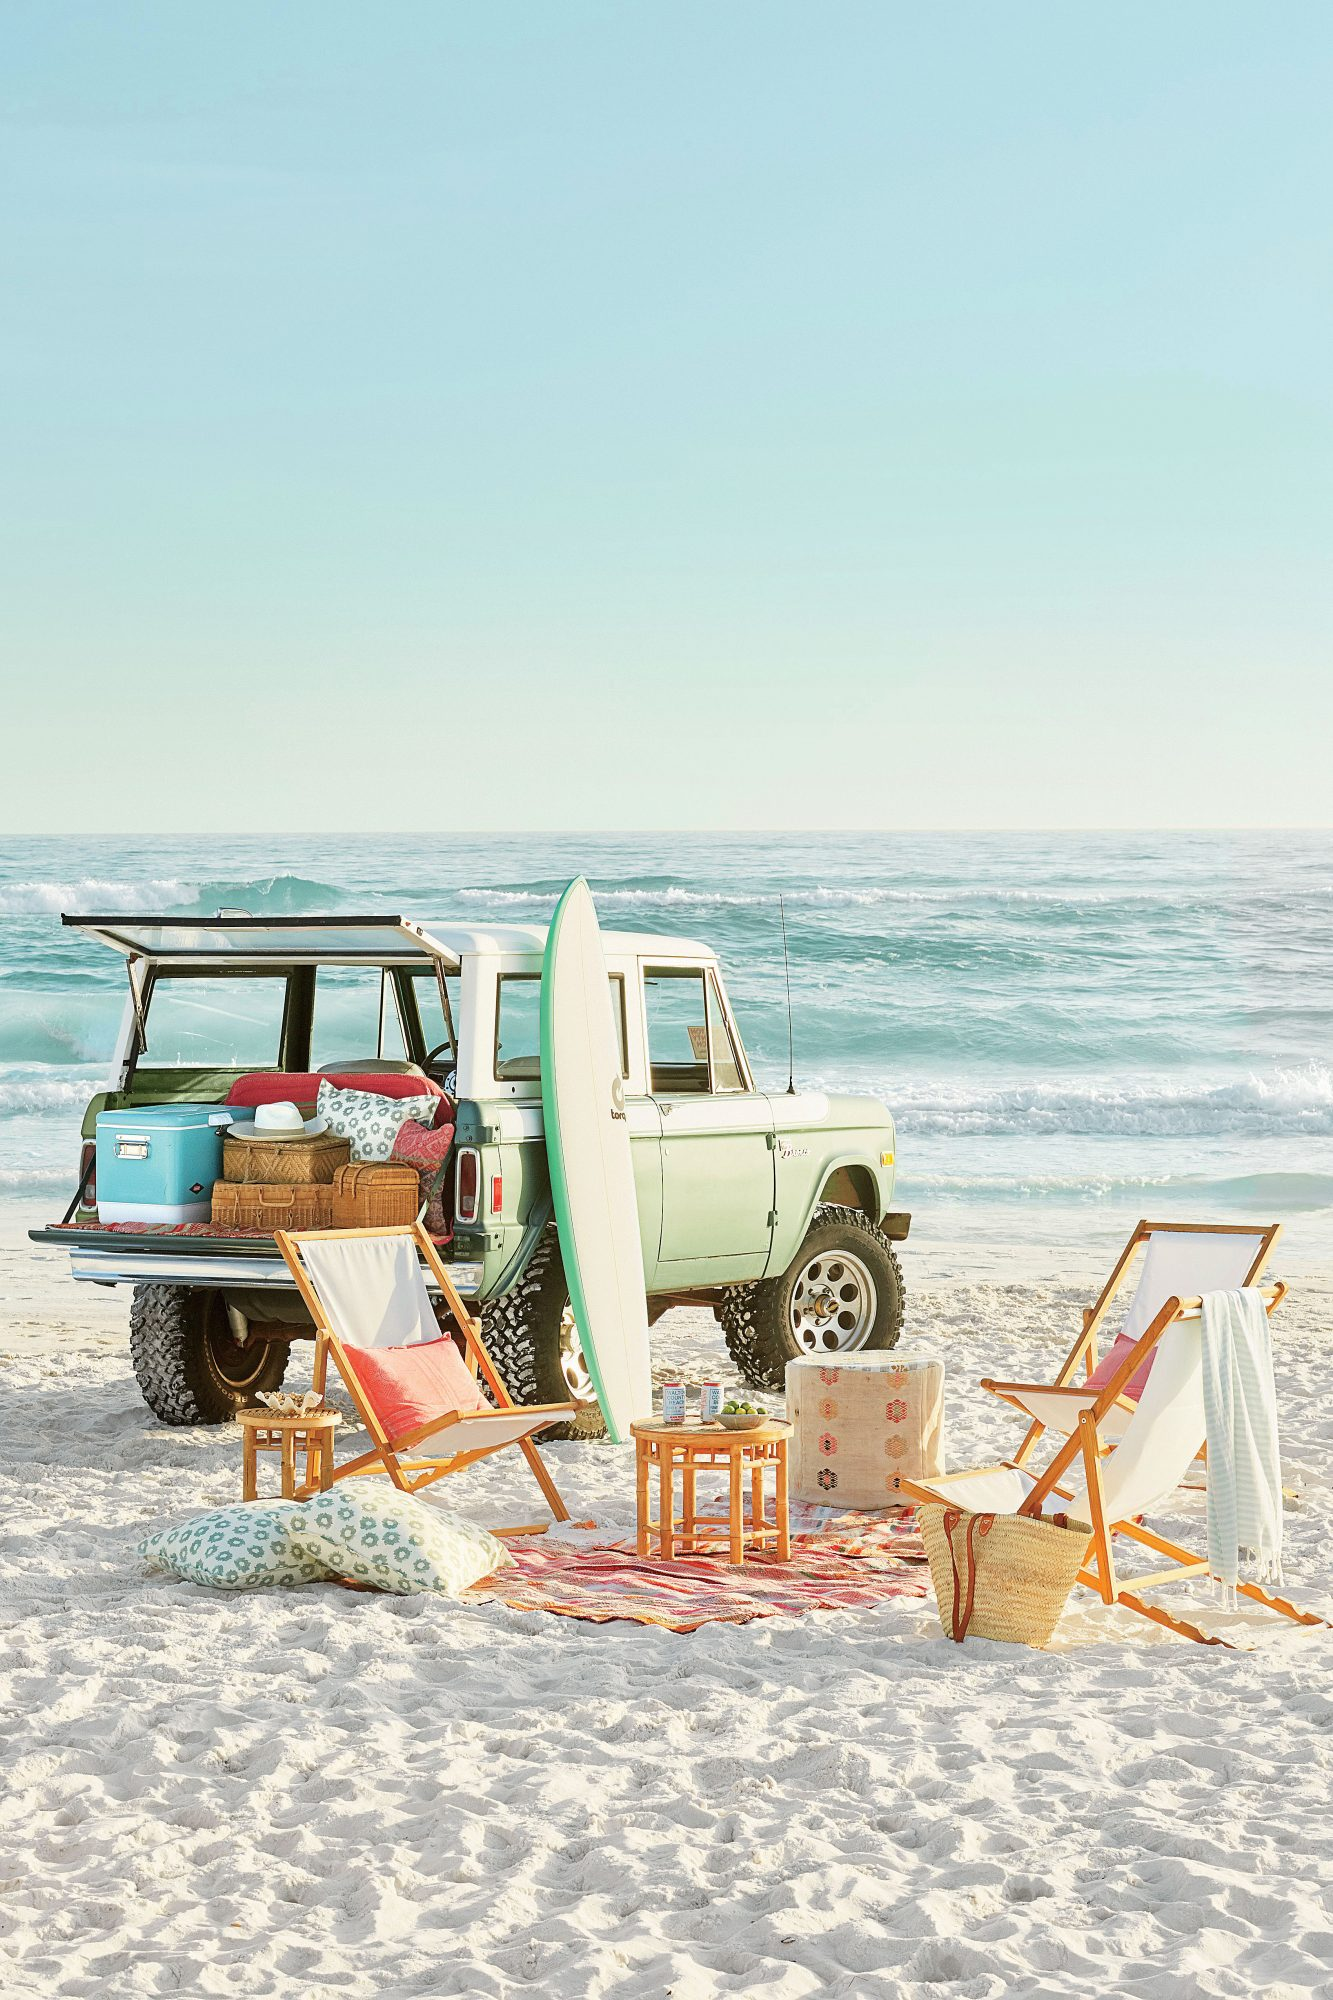 The sugar-white sands of Grayton Beach are set along Florida's iconic Highway 30A and adjacent to Grayton Beach State Park. It's a prime destination for fishing, boating, walking, gazing out into the turquoise waters of the Gulf, and yes—driving on the be